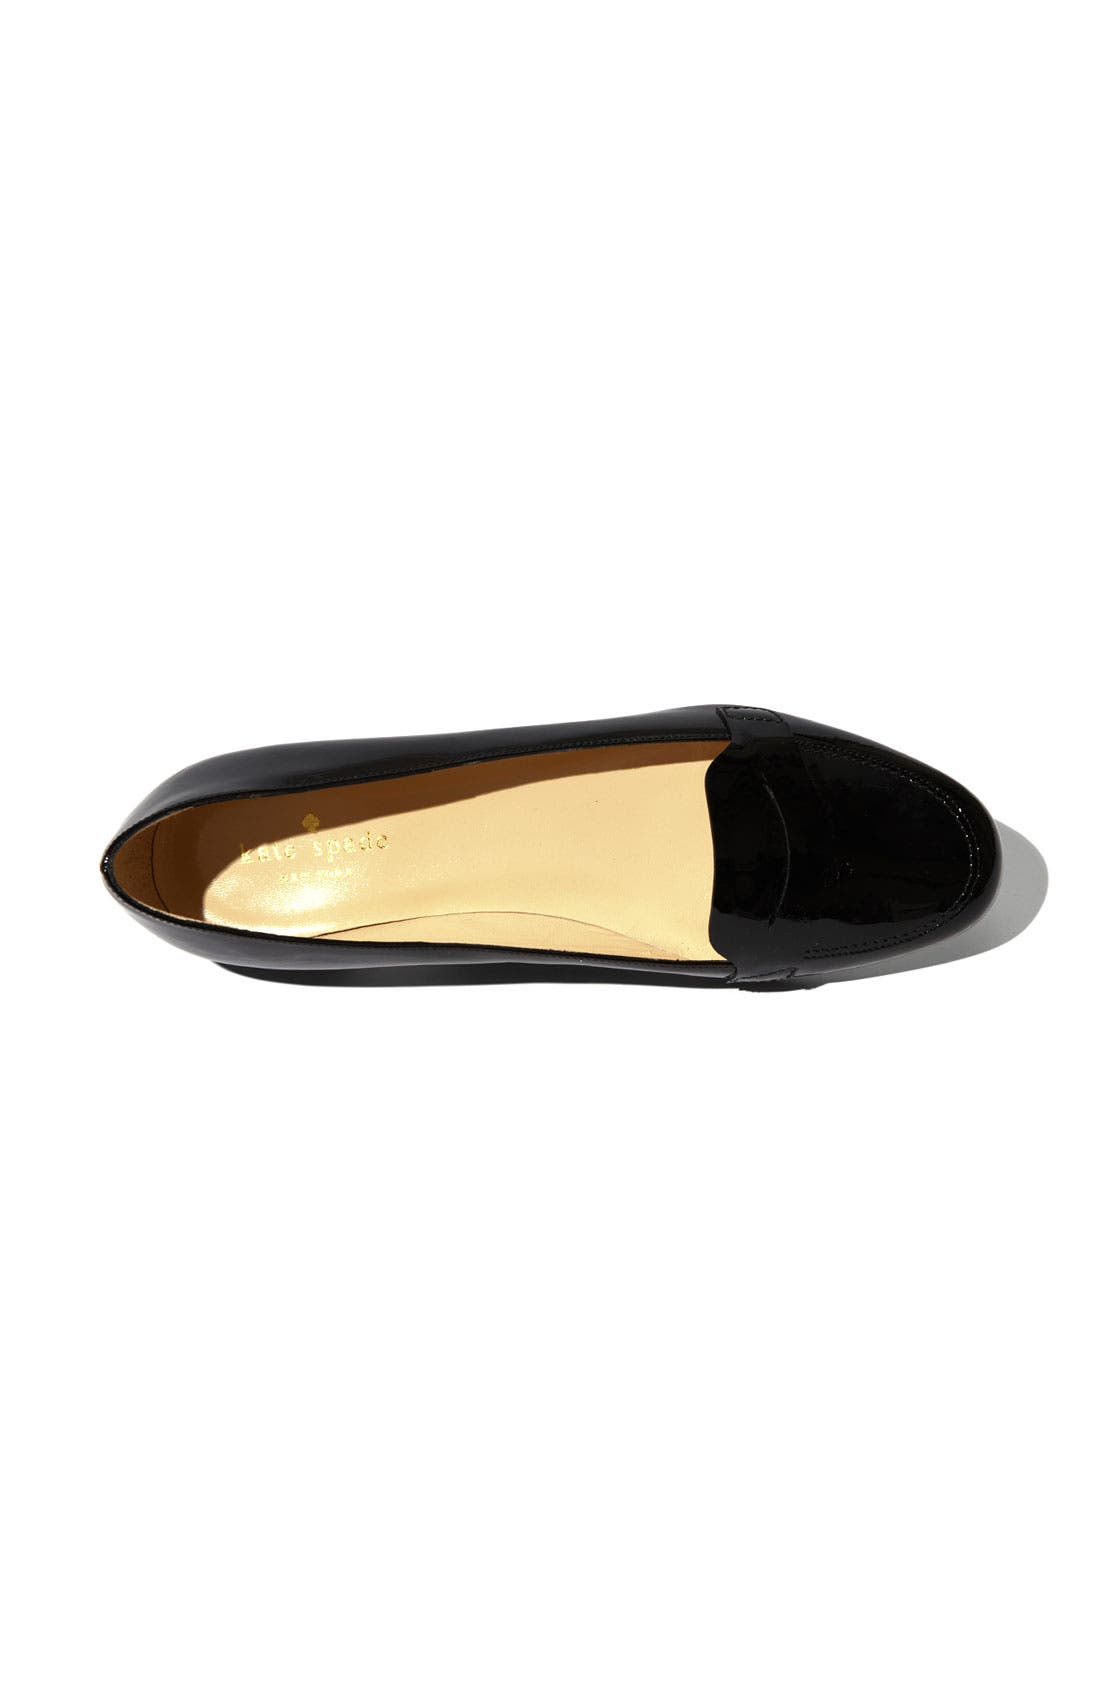 Alternate Image 3  - kate spade new york 'olympia' loafer